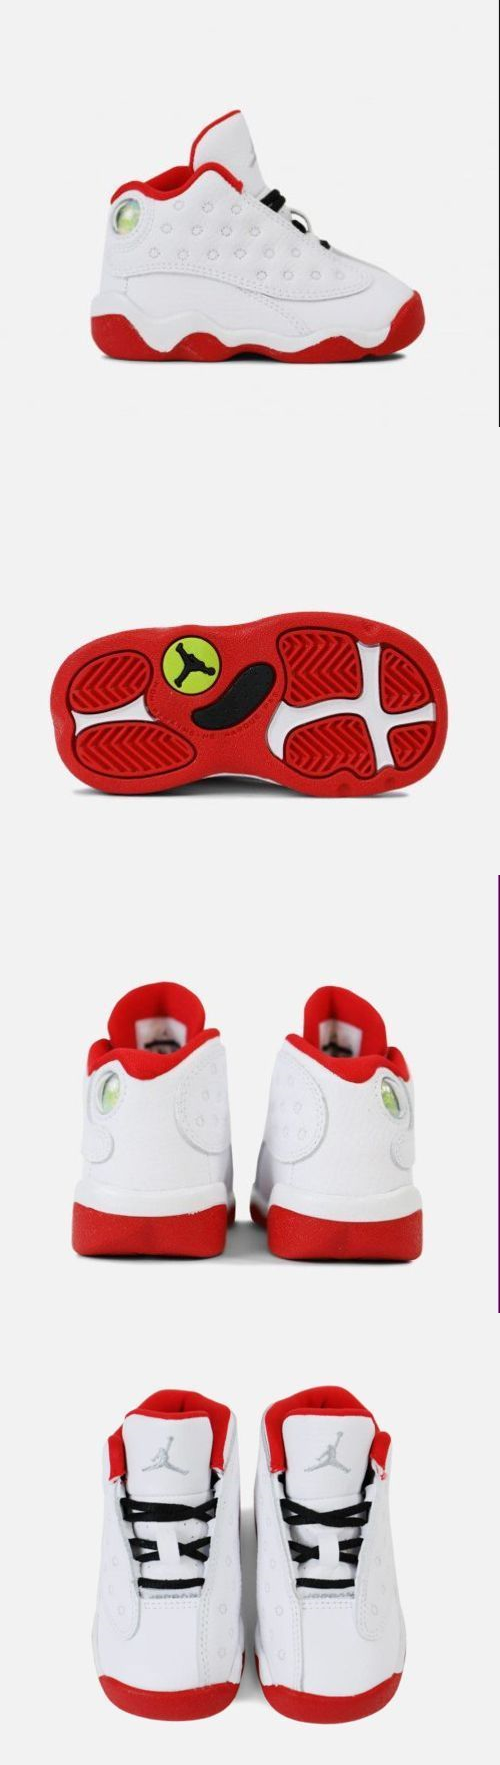 2457e7b3a376 Infant Shoes  New Baby Air Jordan Retro 13 Toddler Shoes (414581-103) White  Mts-Univ Red -  BUY IT NOW ONLY   59.99 on eBay!